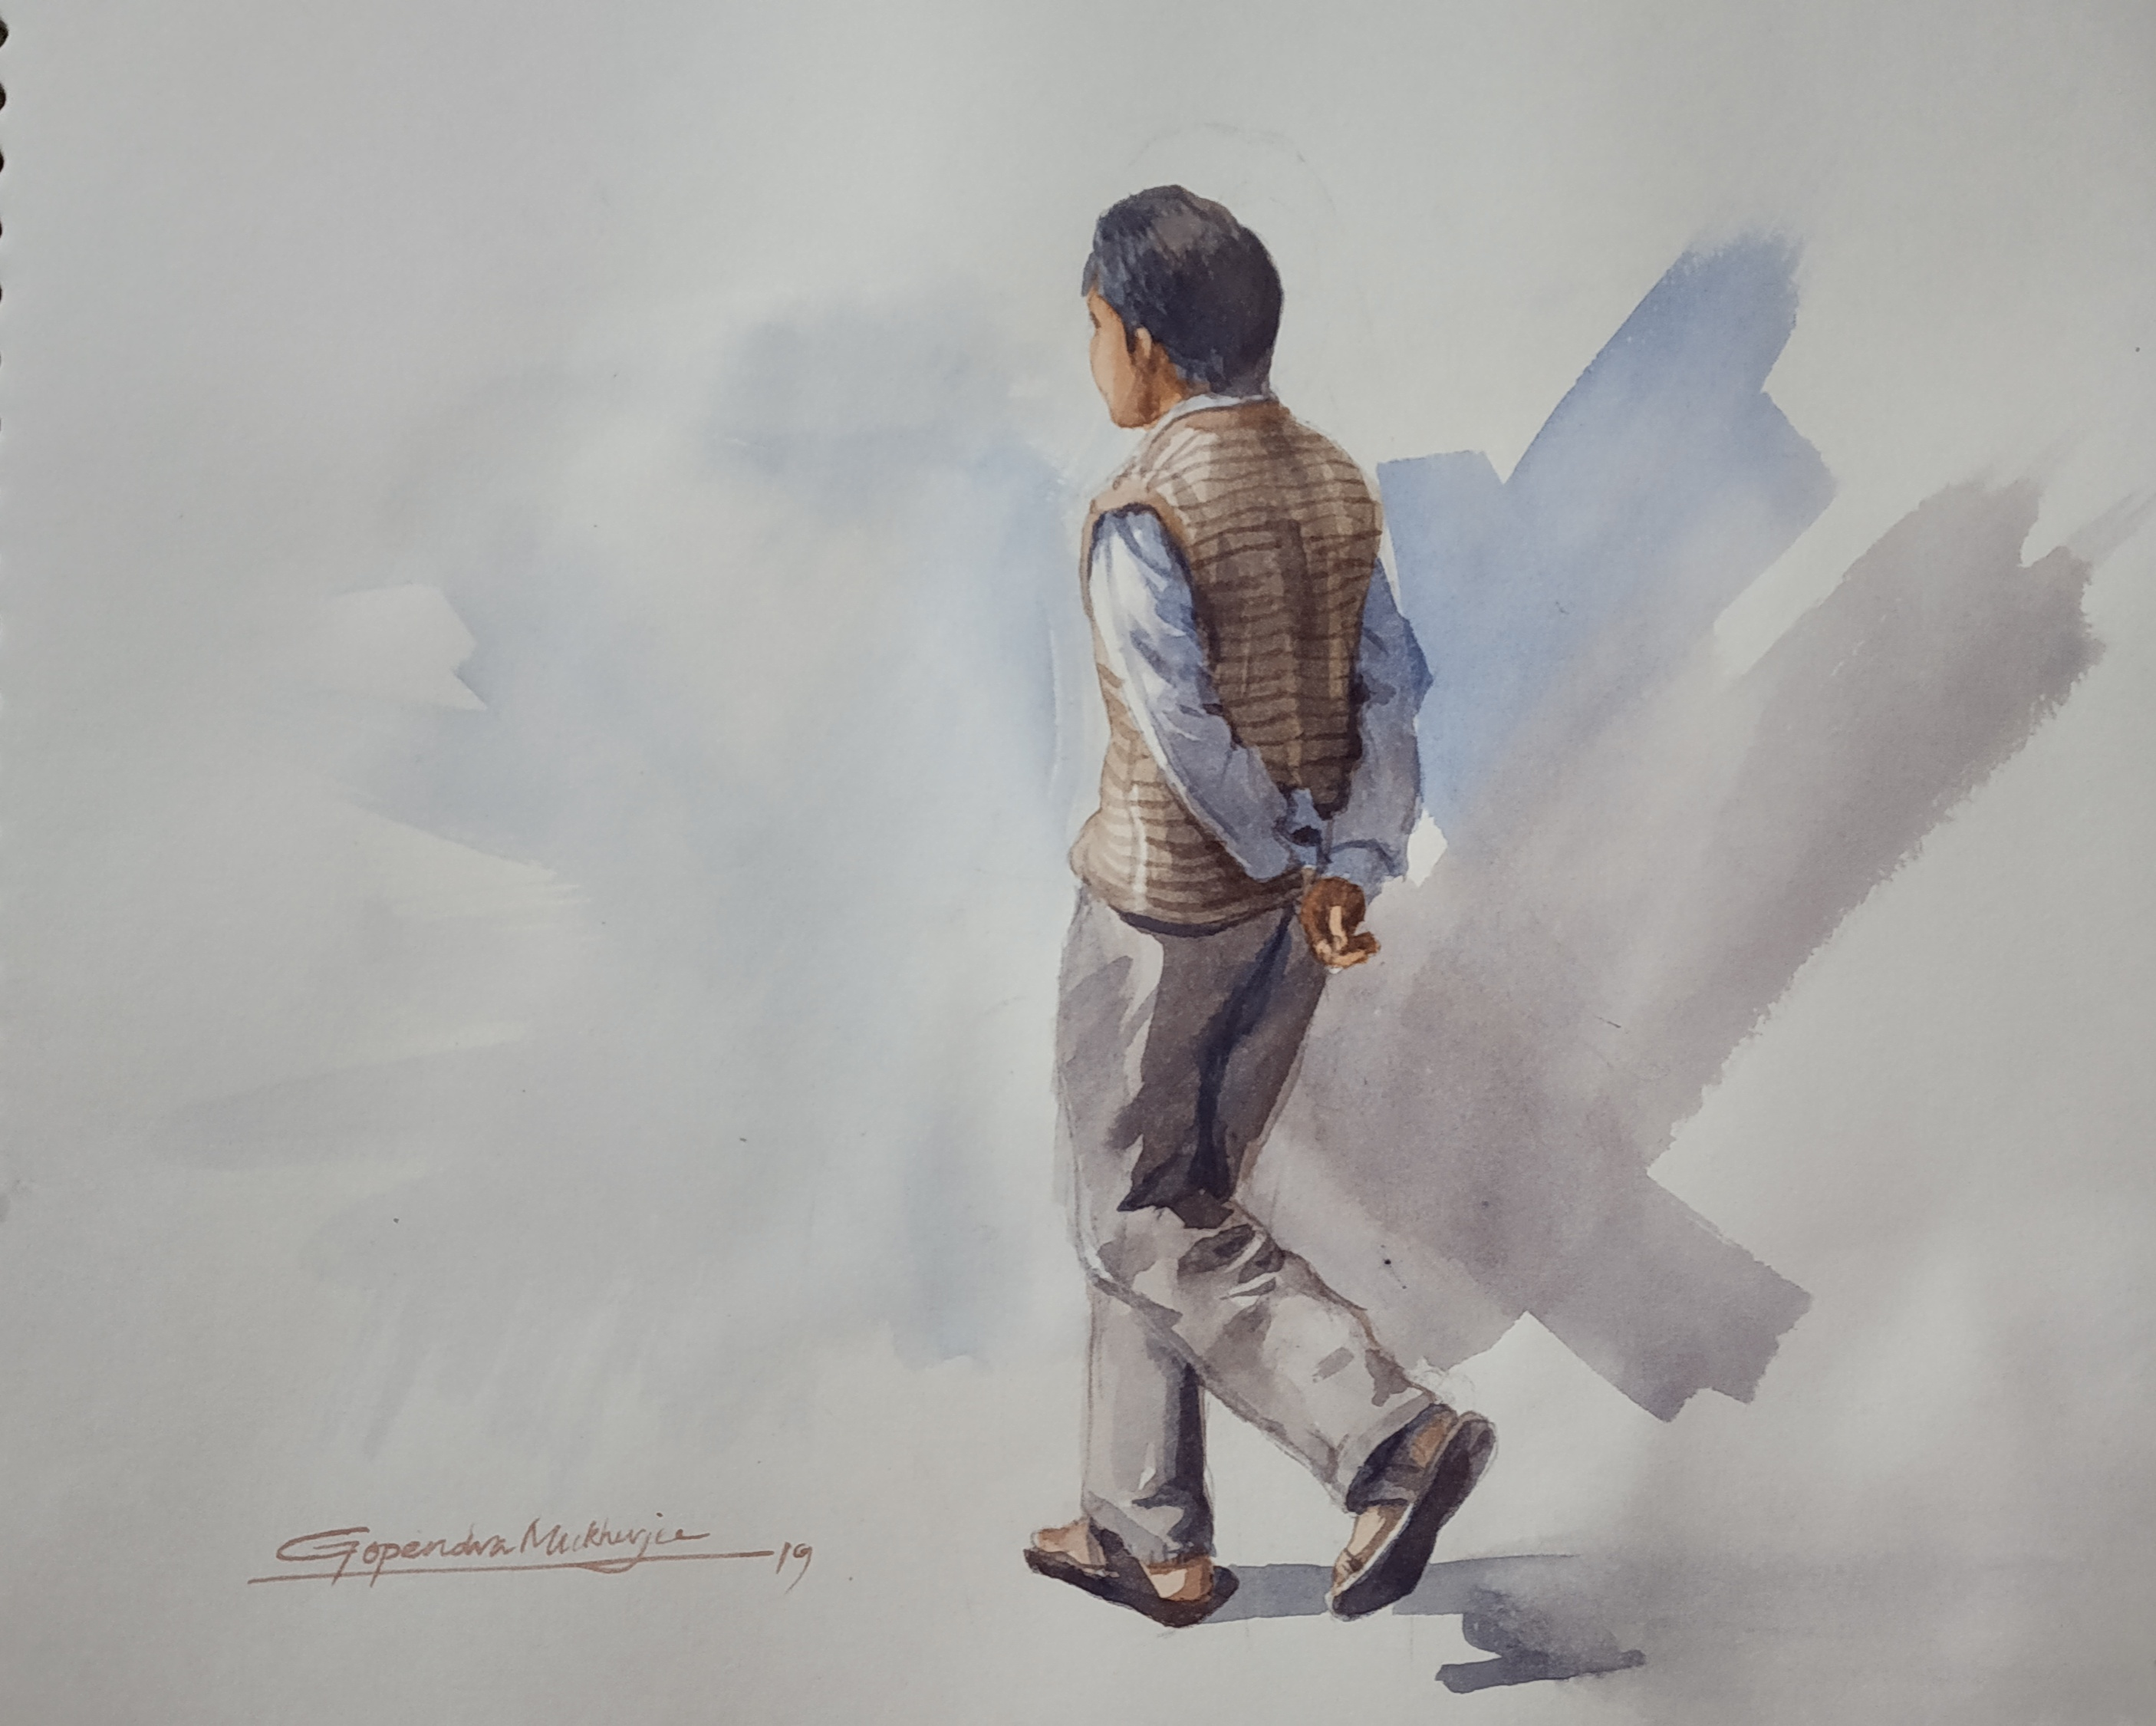 Human-paintings-Watercolor Showflipper